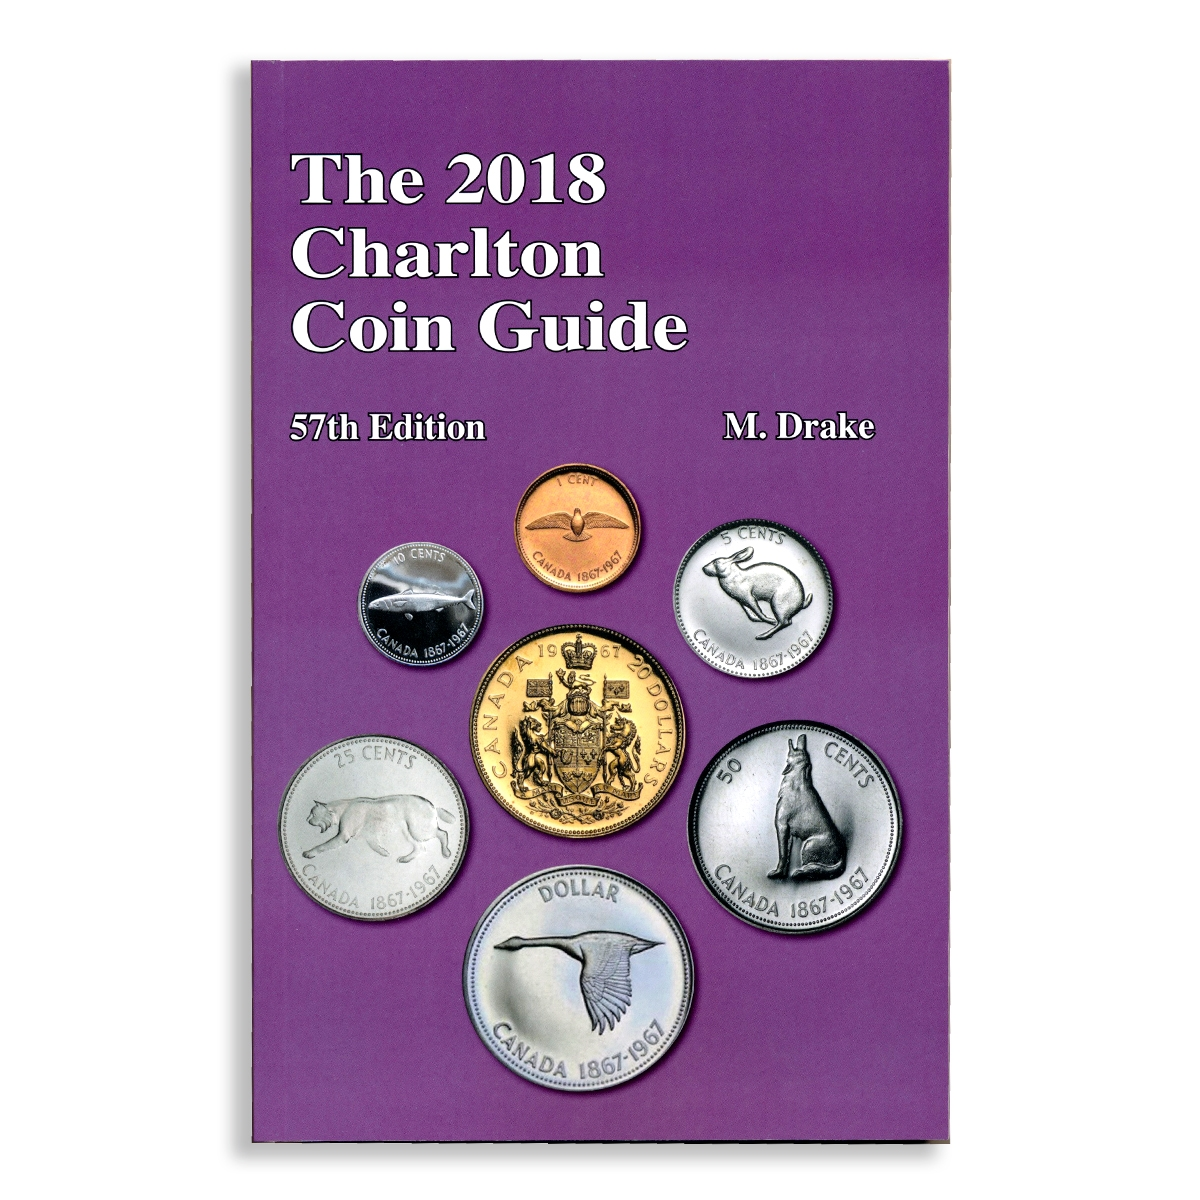 The 2018 Charlton Coin Guide, 57th Edition